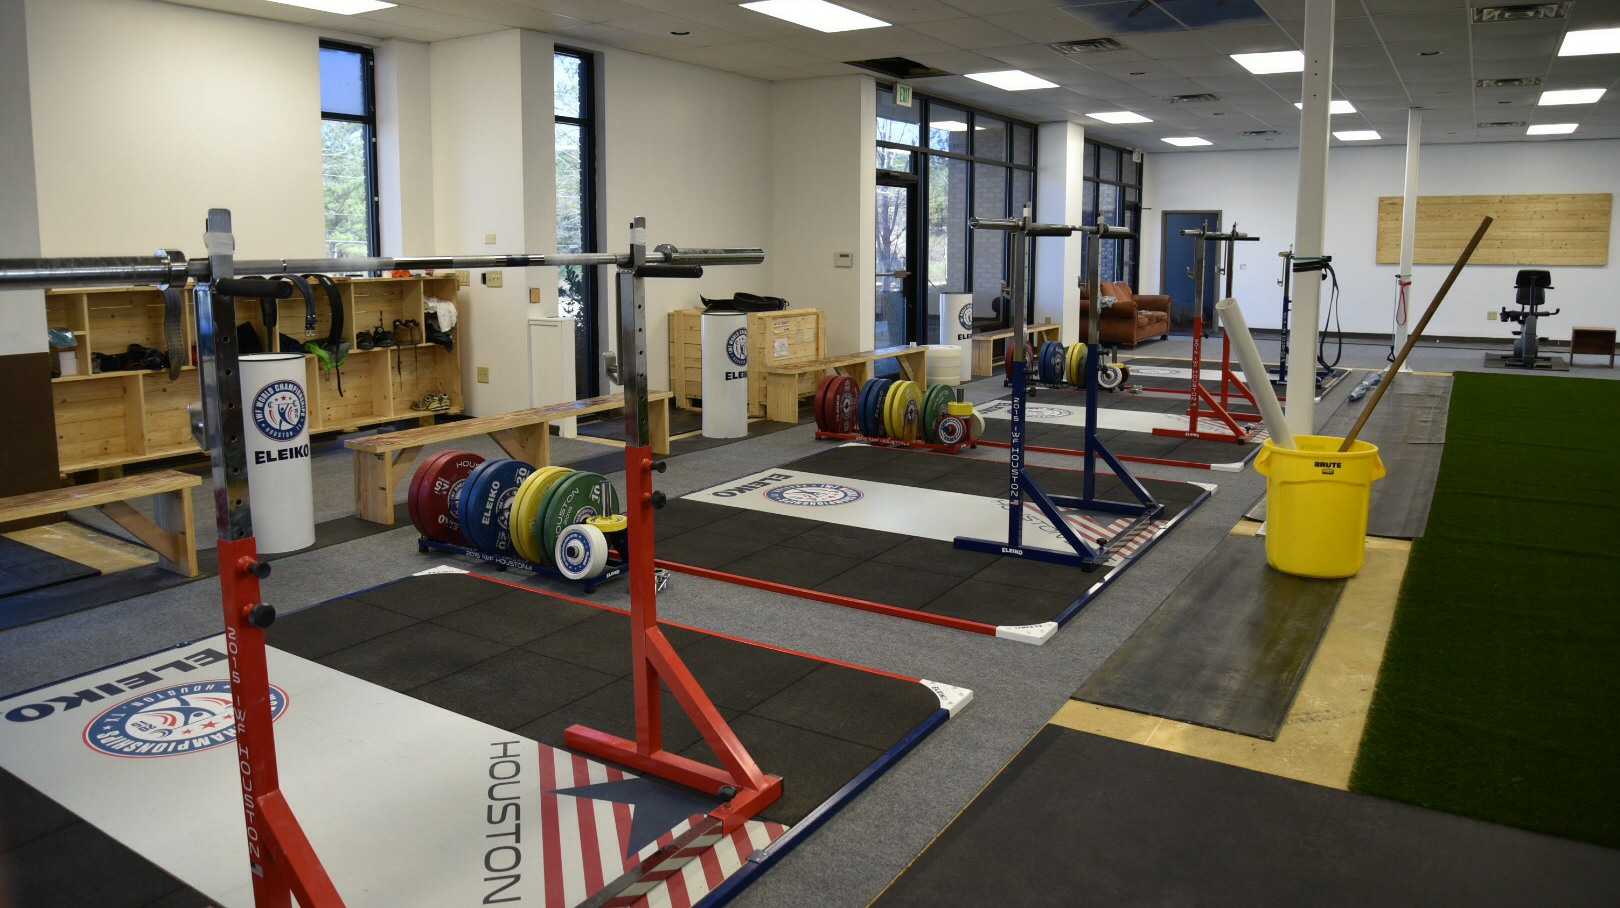 Chalk-Gym-Olympic-Weightlifting-Interior-Wide-View.jpg